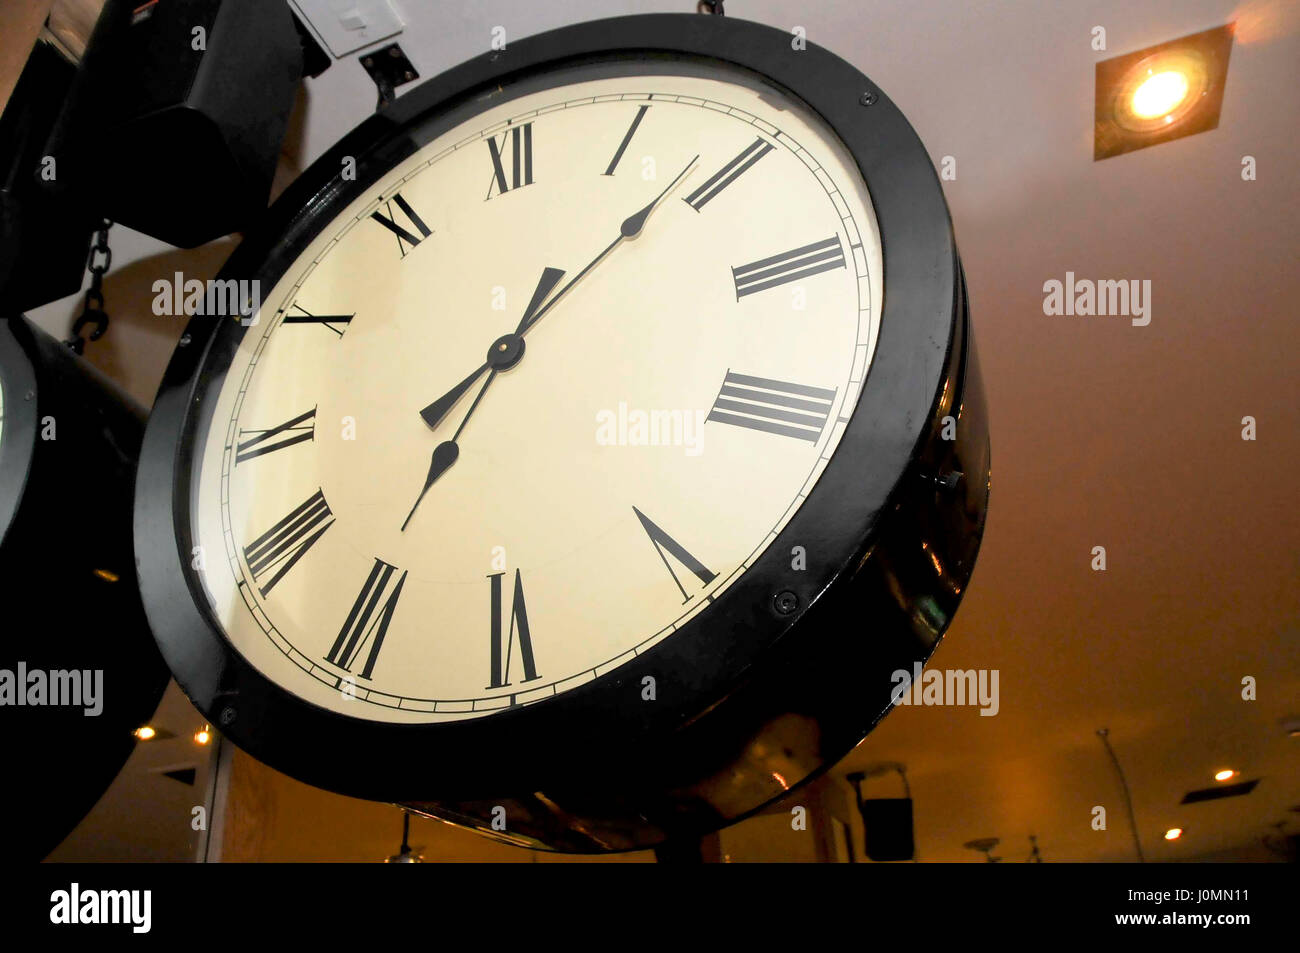 Clock with Roman numerals Black - Stock Image